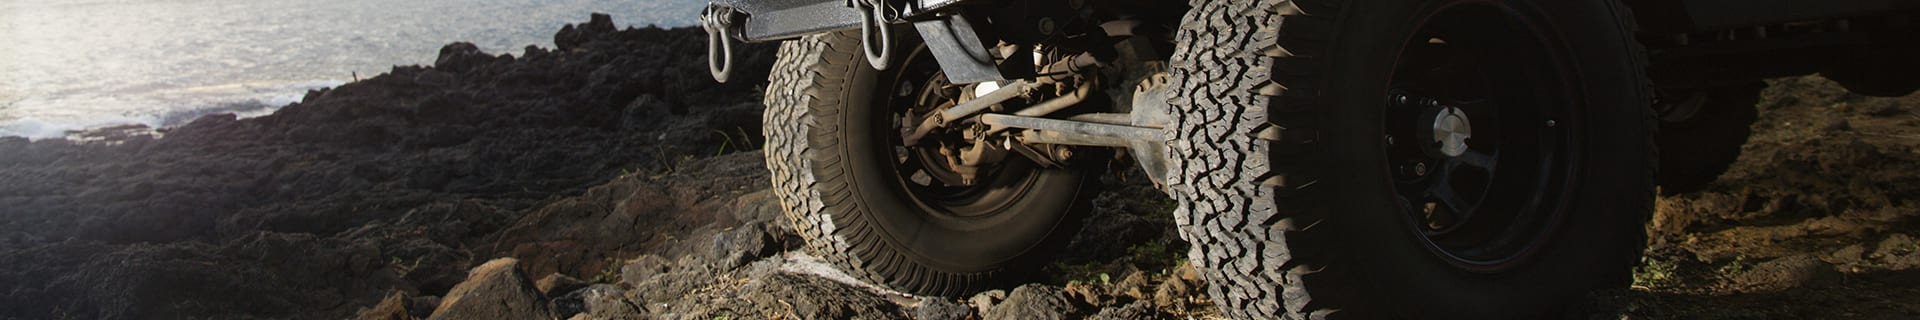 Essential Guide To All-terrain Tyres - Best 4x4 Tyres